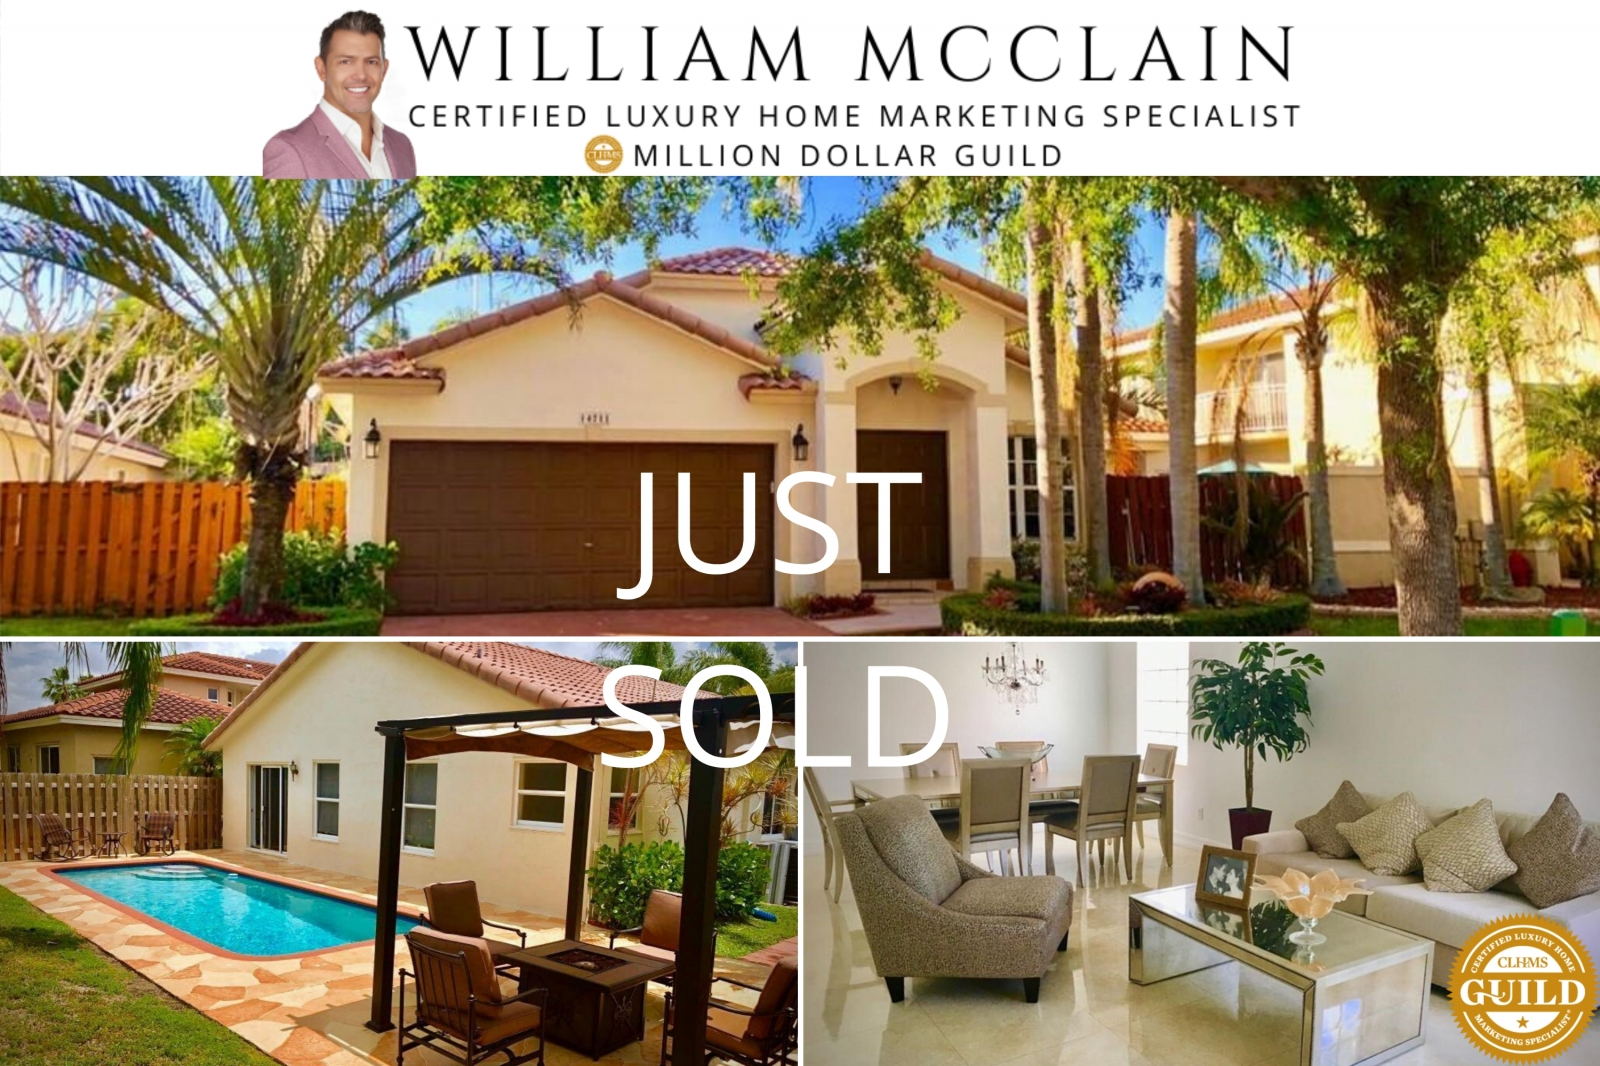 Just Sold by William McClain